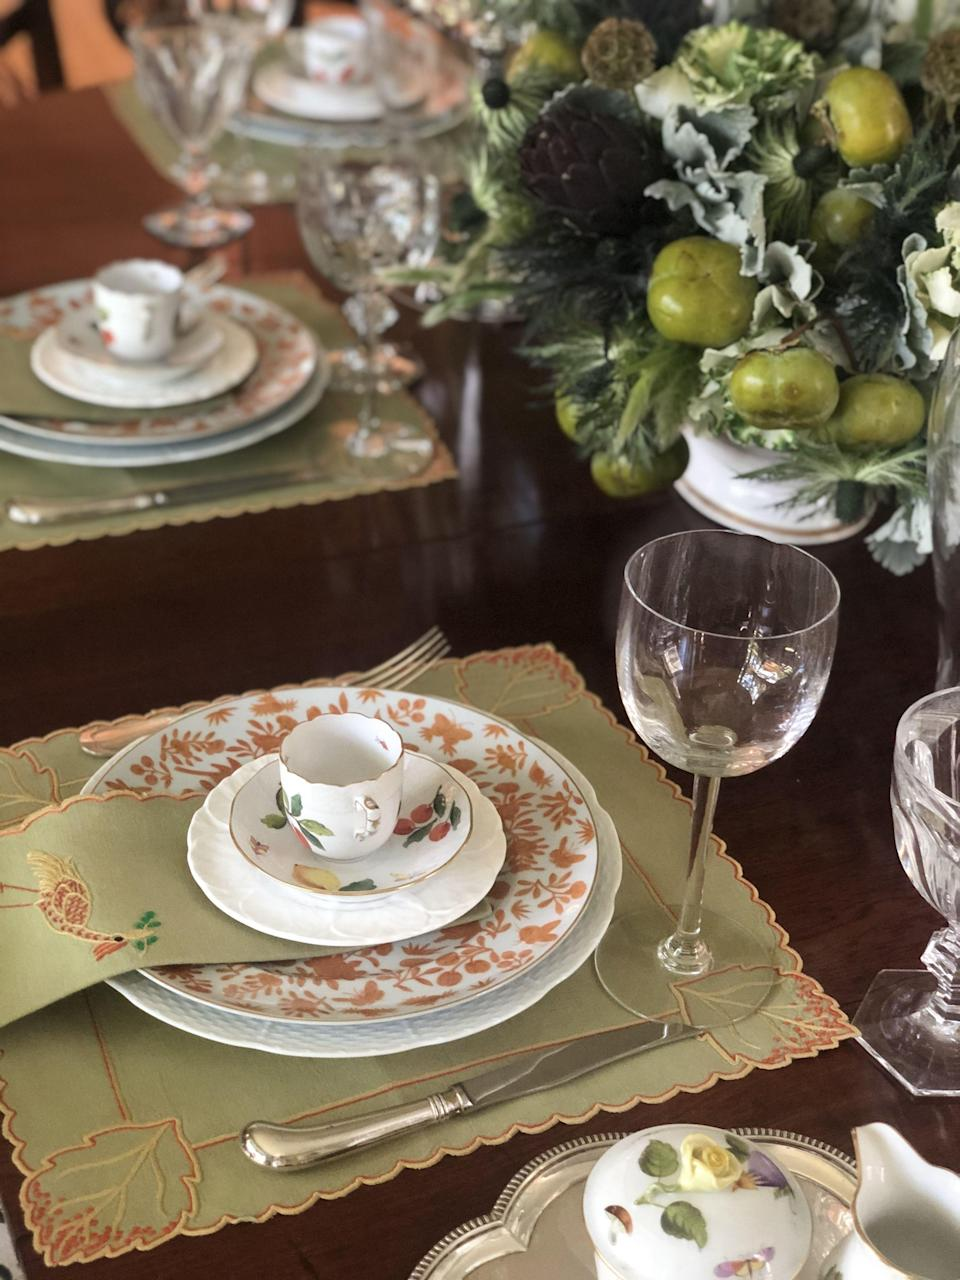 """<p>Setting your holiday table means it's time to pull out your family's<a href=""""https://www.veranda.com/home-decorators/a32909631/importance-of-good-china/"""" rel=""""nofollow noopener"""" target=""""_blank"""" data-ylk=""""slk:favorite china"""" class=""""link rapid-noclick-resp""""> favorite china</a>, heirloom silver, and <a href=""""https://www.veranda.com/luxury-lifestyle/g32647281/types-of-serving-dishes"""" rel=""""nofollow noopener"""" target=""""_blank"""" data-ylk=""""slk:new pieces you've collected over the years"""" class=""""link rapid-noclick-resp"""">new pieces you've collected over the years</a>. After all, it's all about mixing your finds to create a uniquely personal table. The holiday season should be a time to get creative and try a color palette or mix of materials that perhaps you normally wouldn't gravitate toward. Here, nine top interior designers and design luminaries from around the country lend their wisdom for setting a Thanksgiving table that's warm, welcoming, and completely distinctive. </p>"""